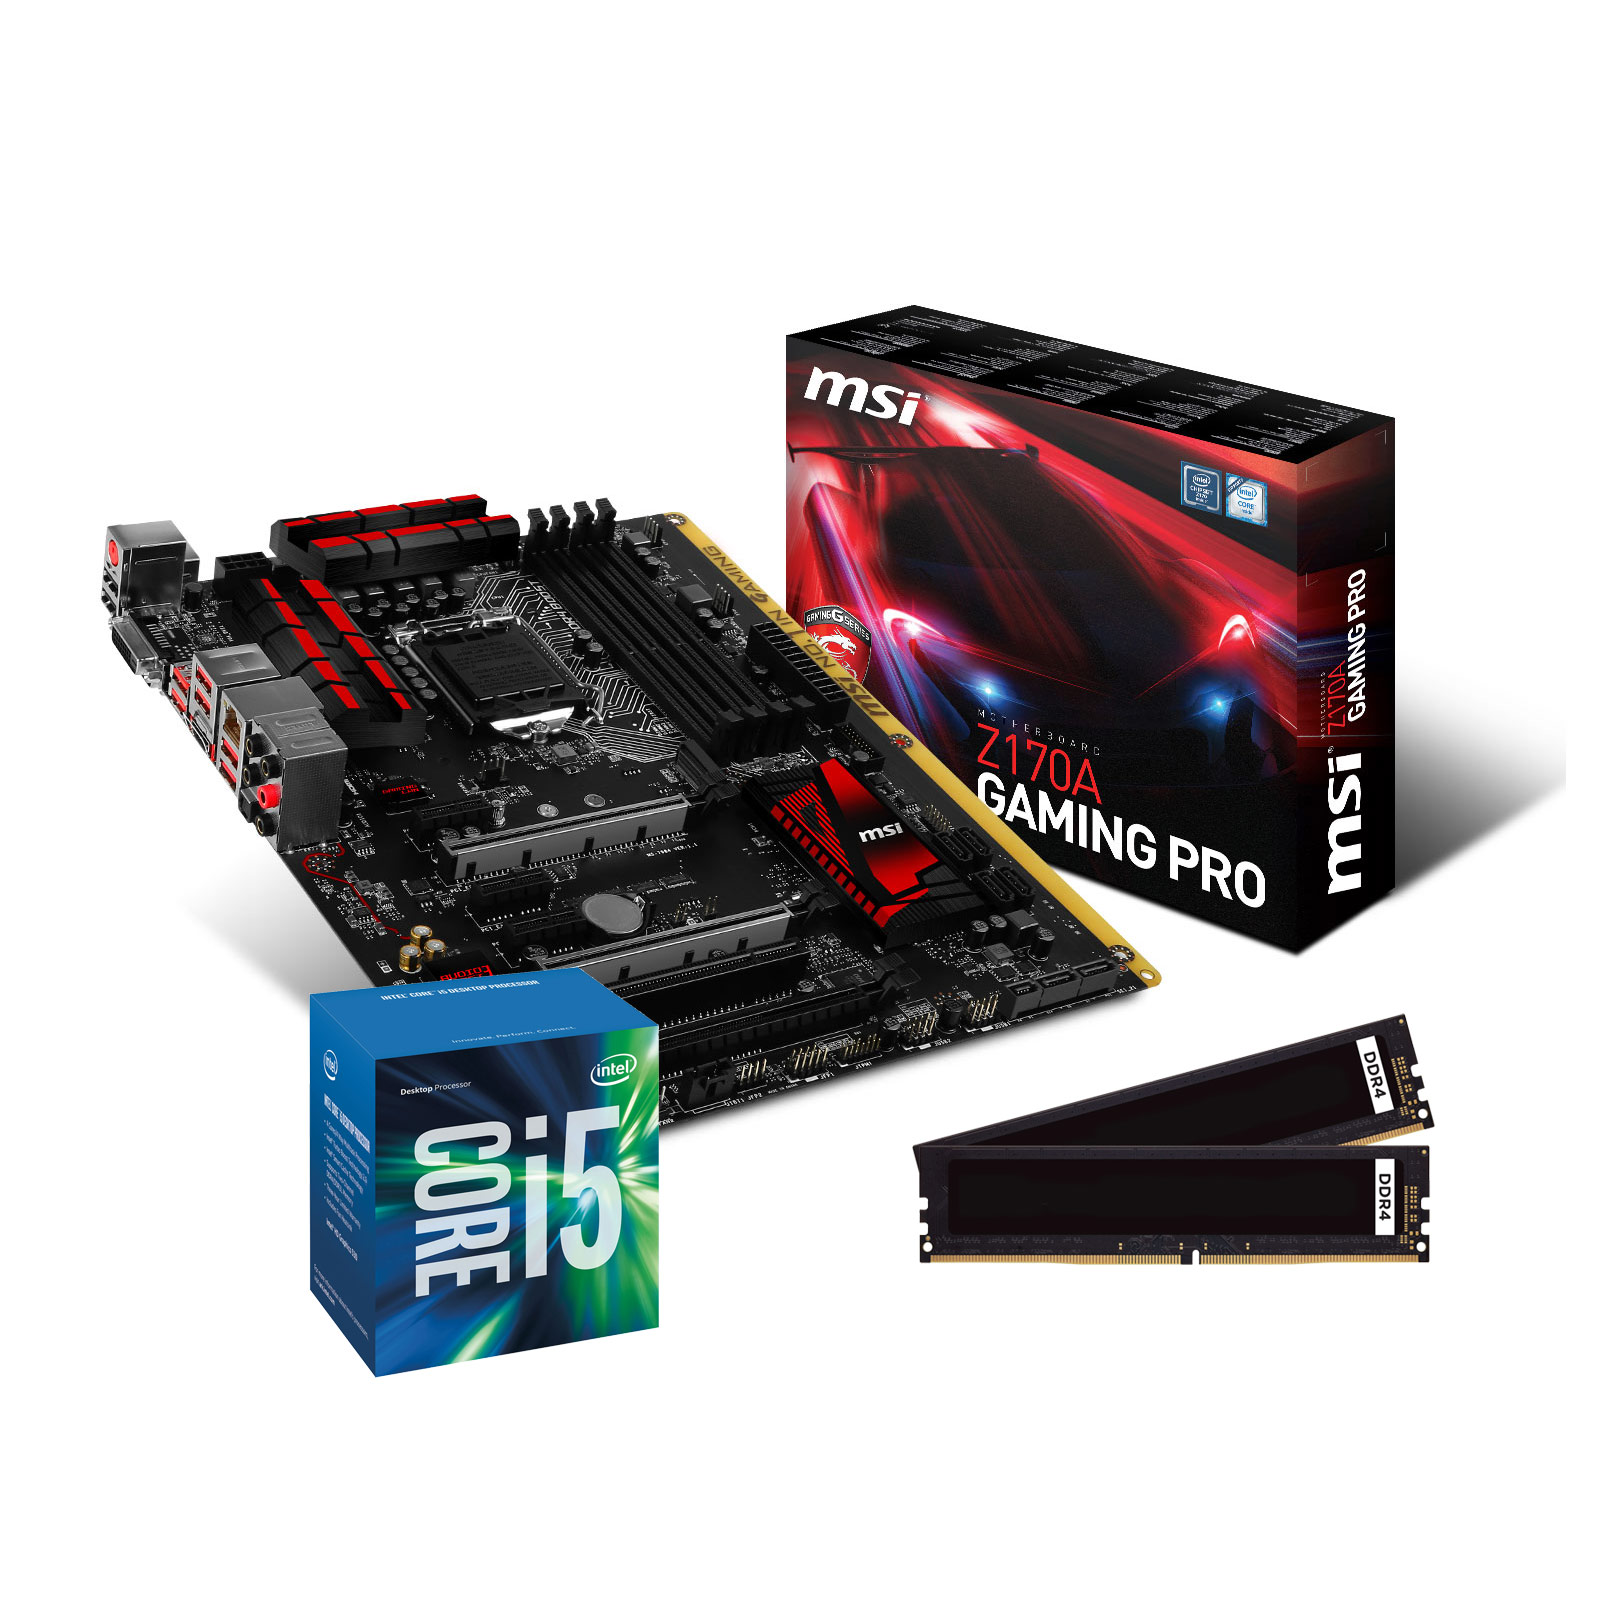 how to add a cpu to msi z170a intel i3